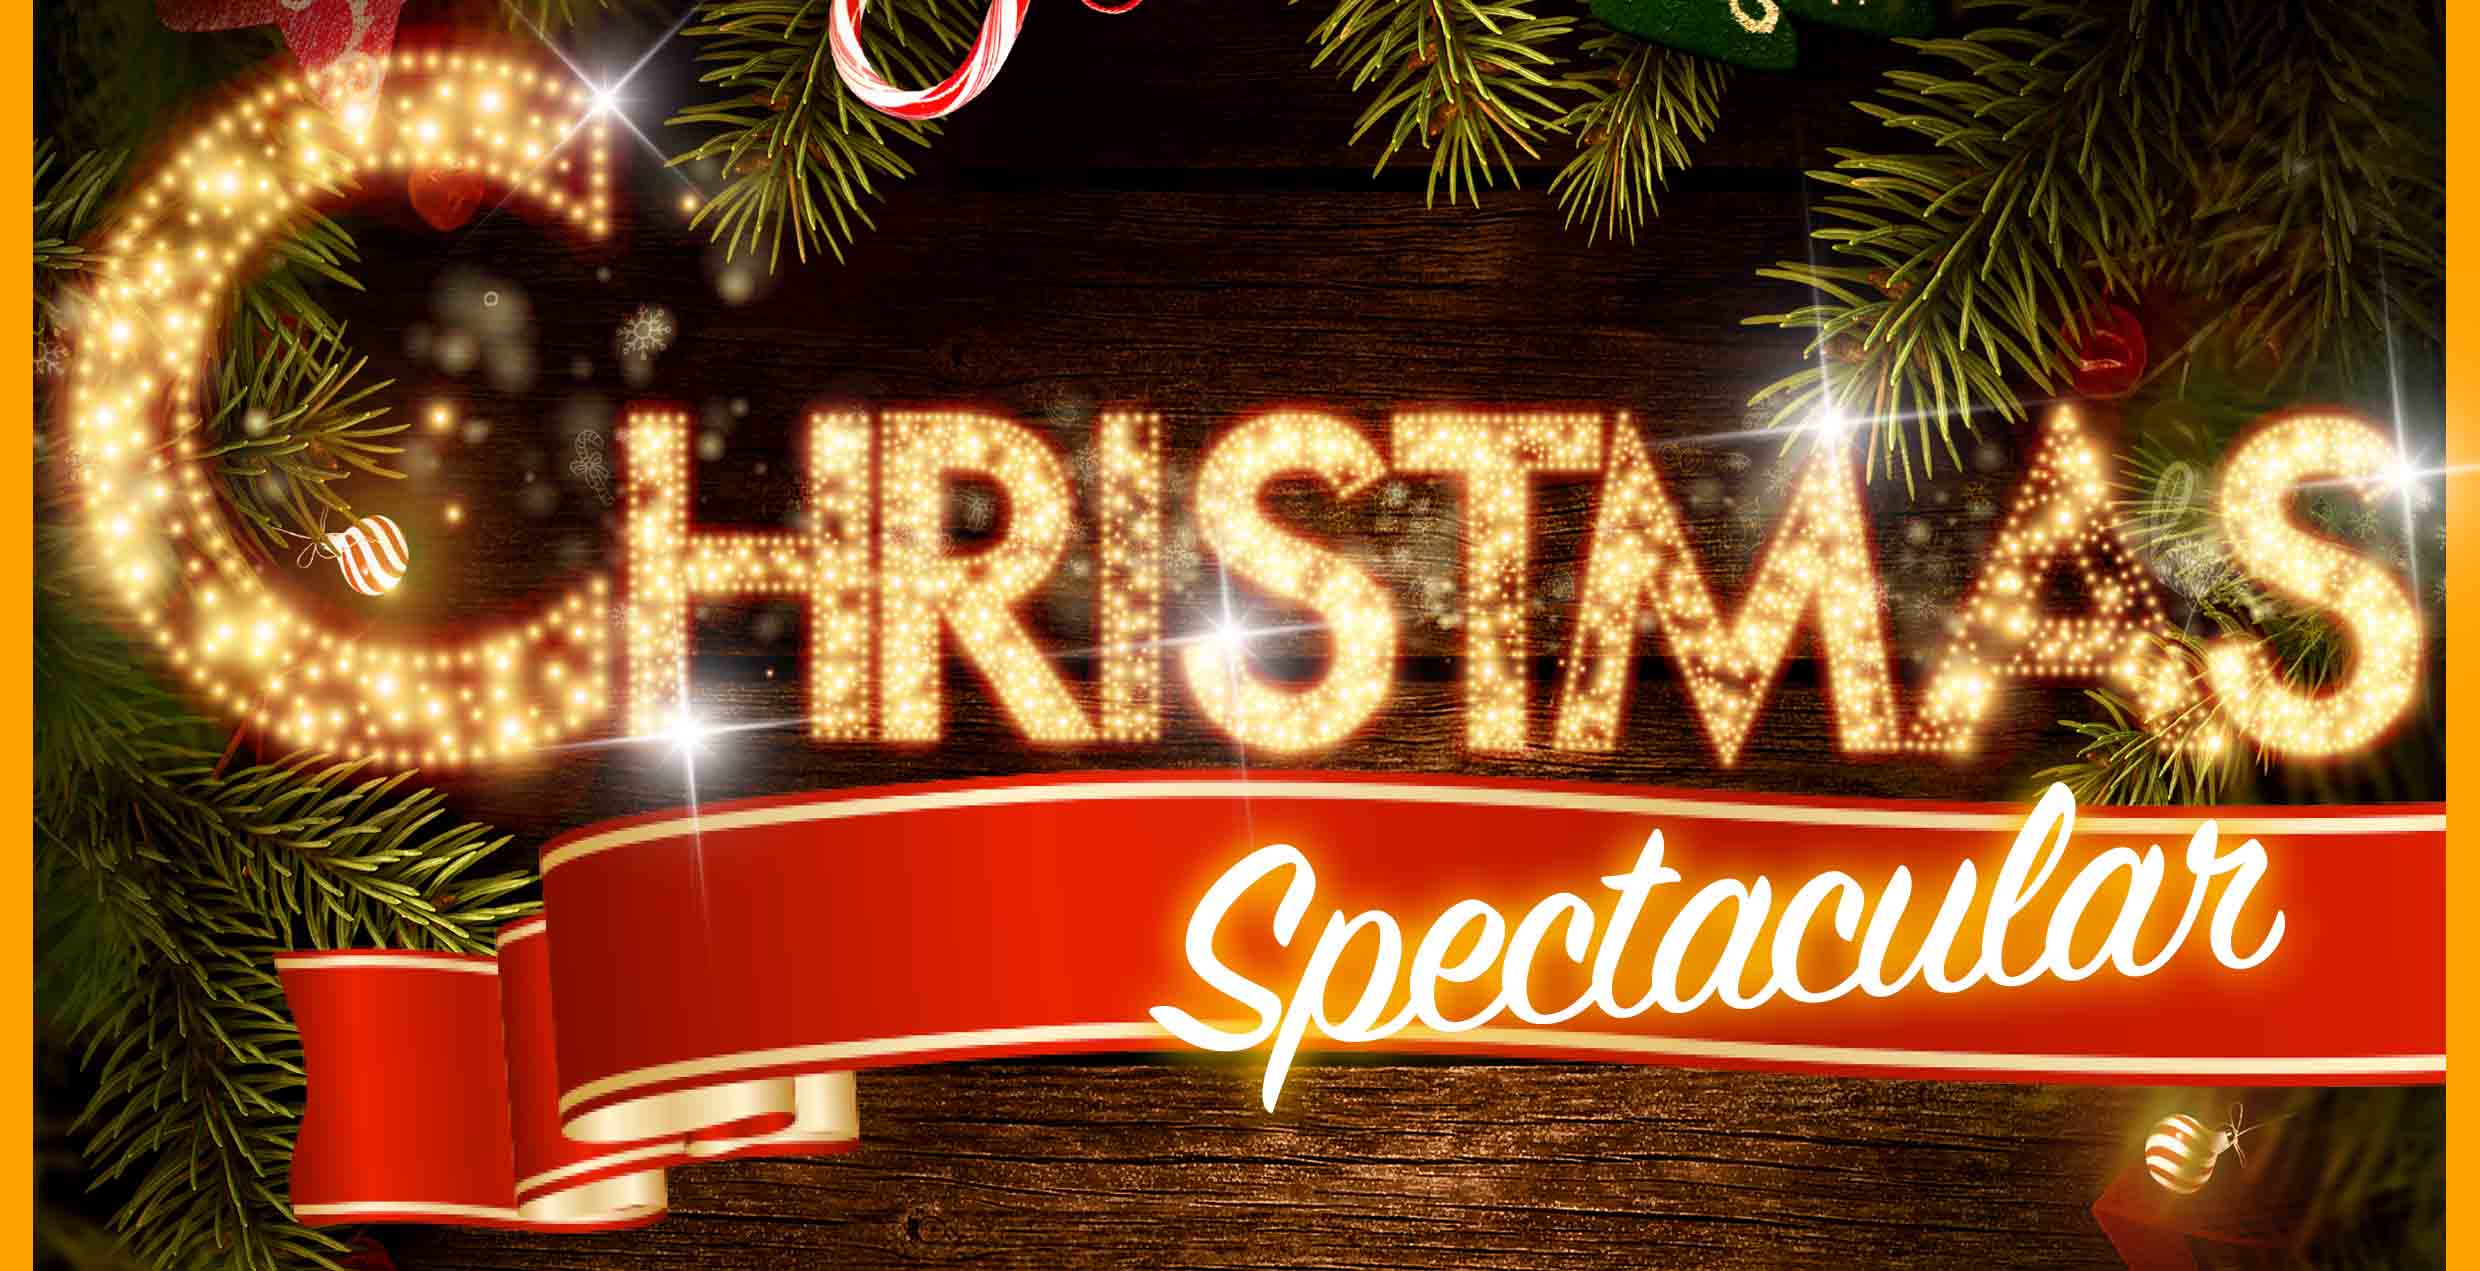 A Christmas Spectacular at Yeadon Town Hall event tickets from ...